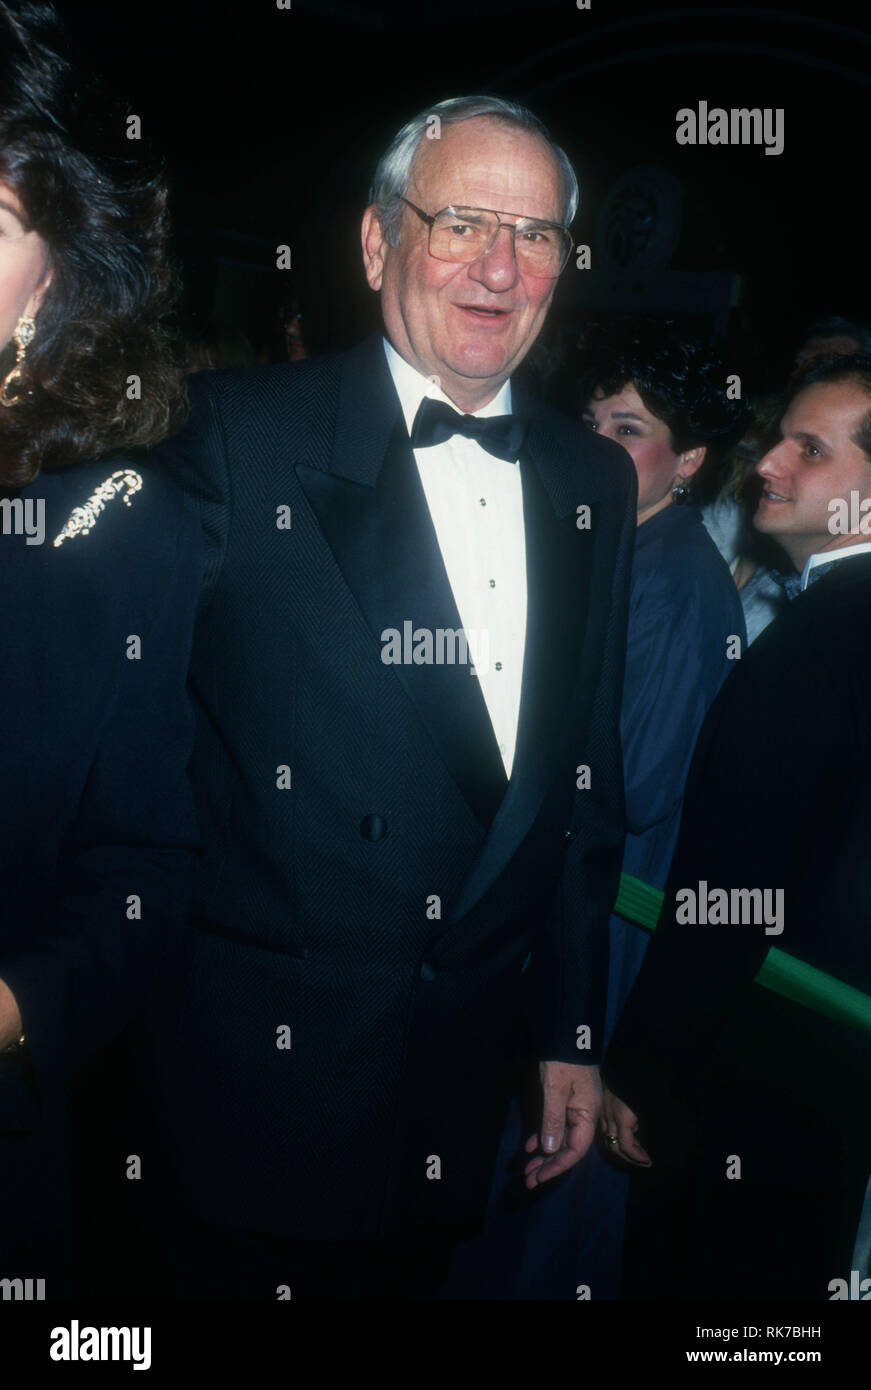 LAS VEGAS, NV - JANUARY 1: CEO of Berkshire Hathaway Warren Buffett attends 'An Evening with Barbra Streisand' concert on January 1, 1994 at MGM Grand Garden in Las Vegas, Nevada. Photo by Barry King/Alamy Stock Photo - Stock Image